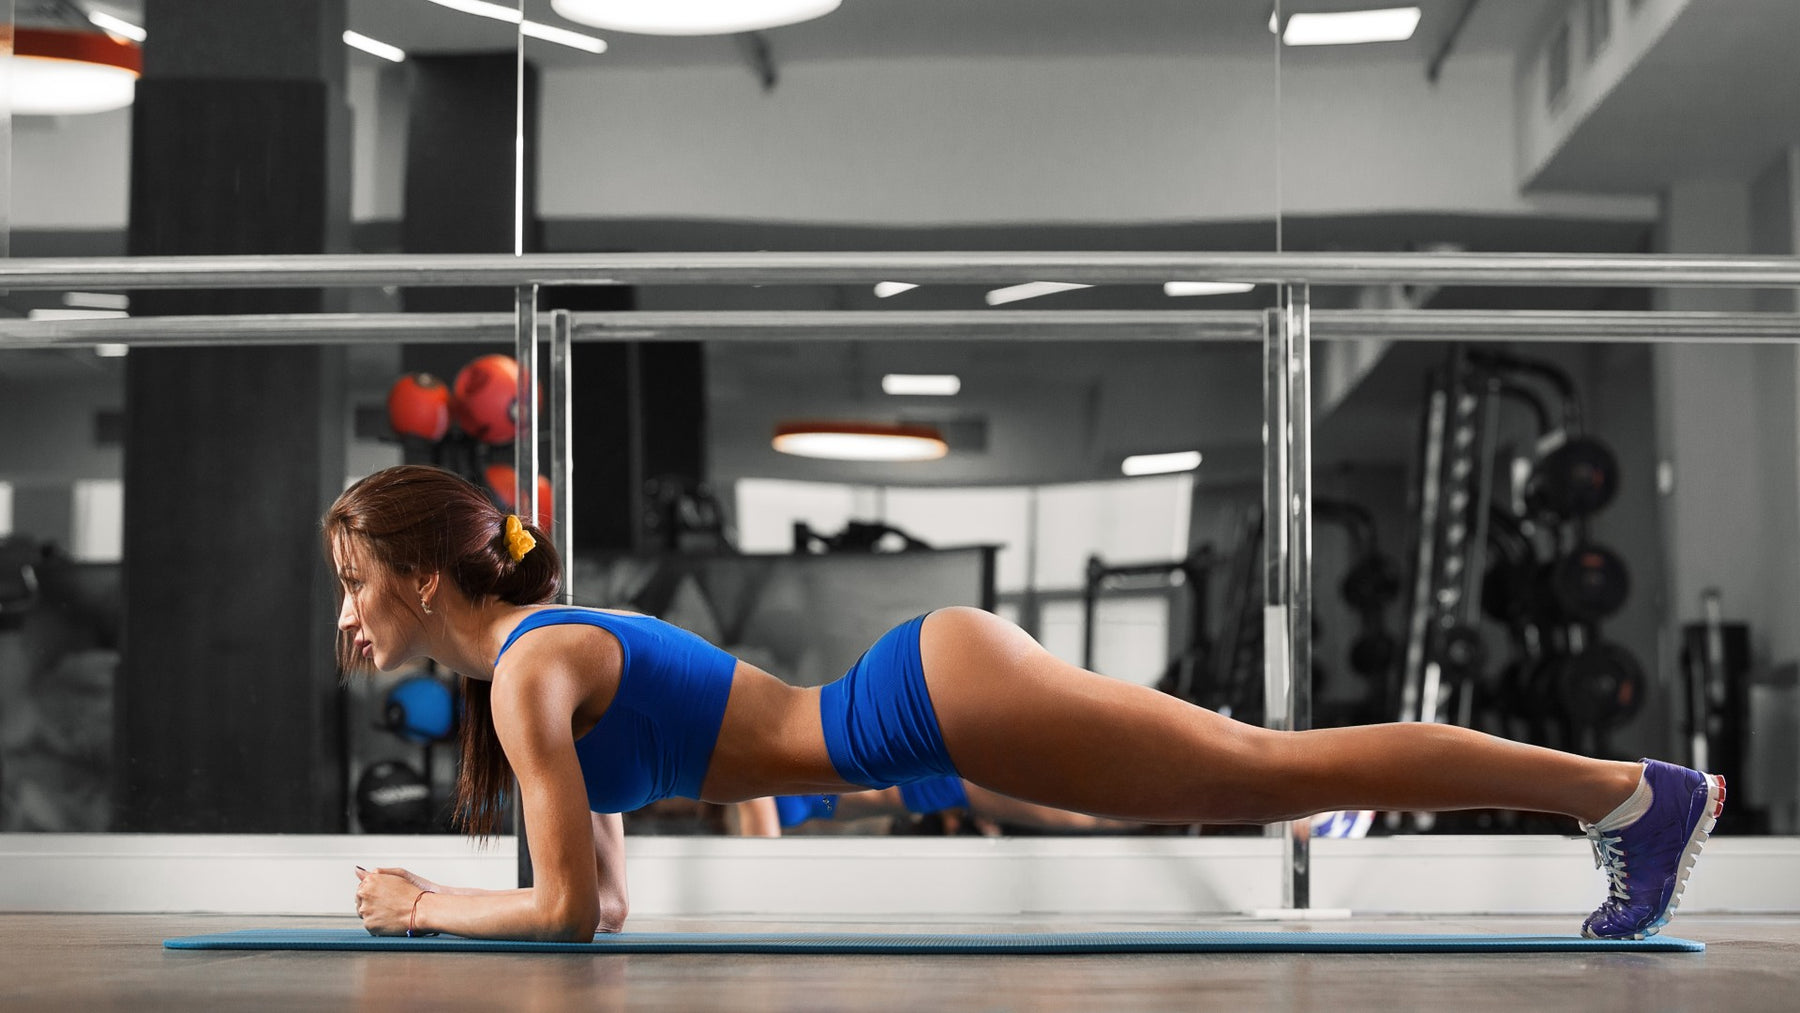 7 Benefits of Planks You Never Thought About